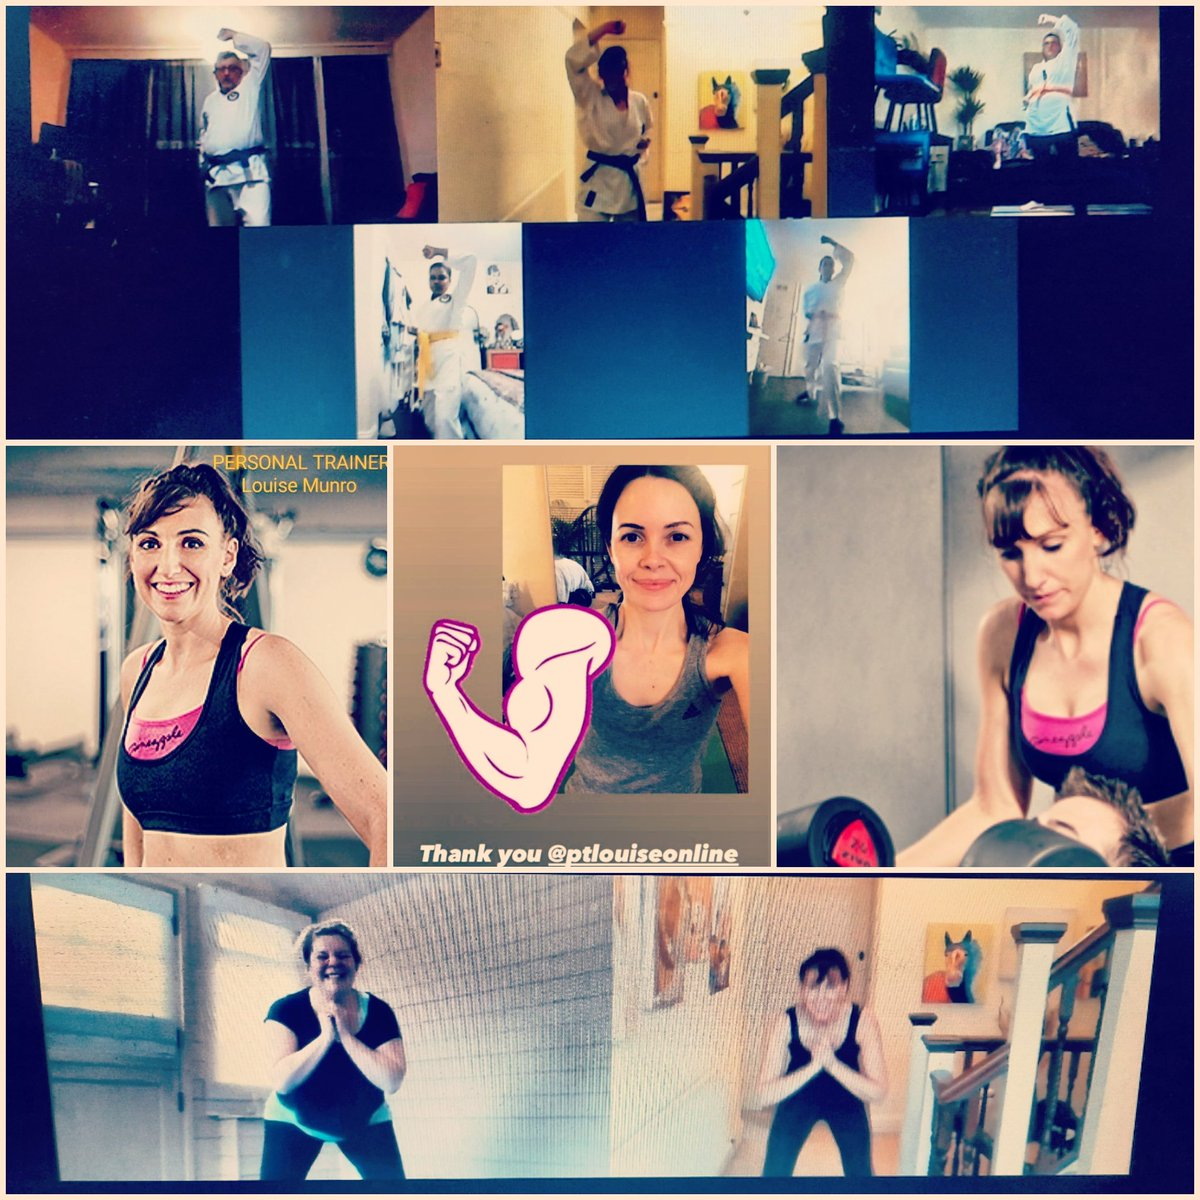 Need #motivation keeping fit during lockdown? Or maybe want to learn #karate? I'm here to help with both #Online #PersonalTraining and #KarateLessons too! Drop me an  DM or email personaltrainerlouise@gmail.com  #OnlineFitness #Cardio #Resistance #FunFitness #Nutrition #PTOnline